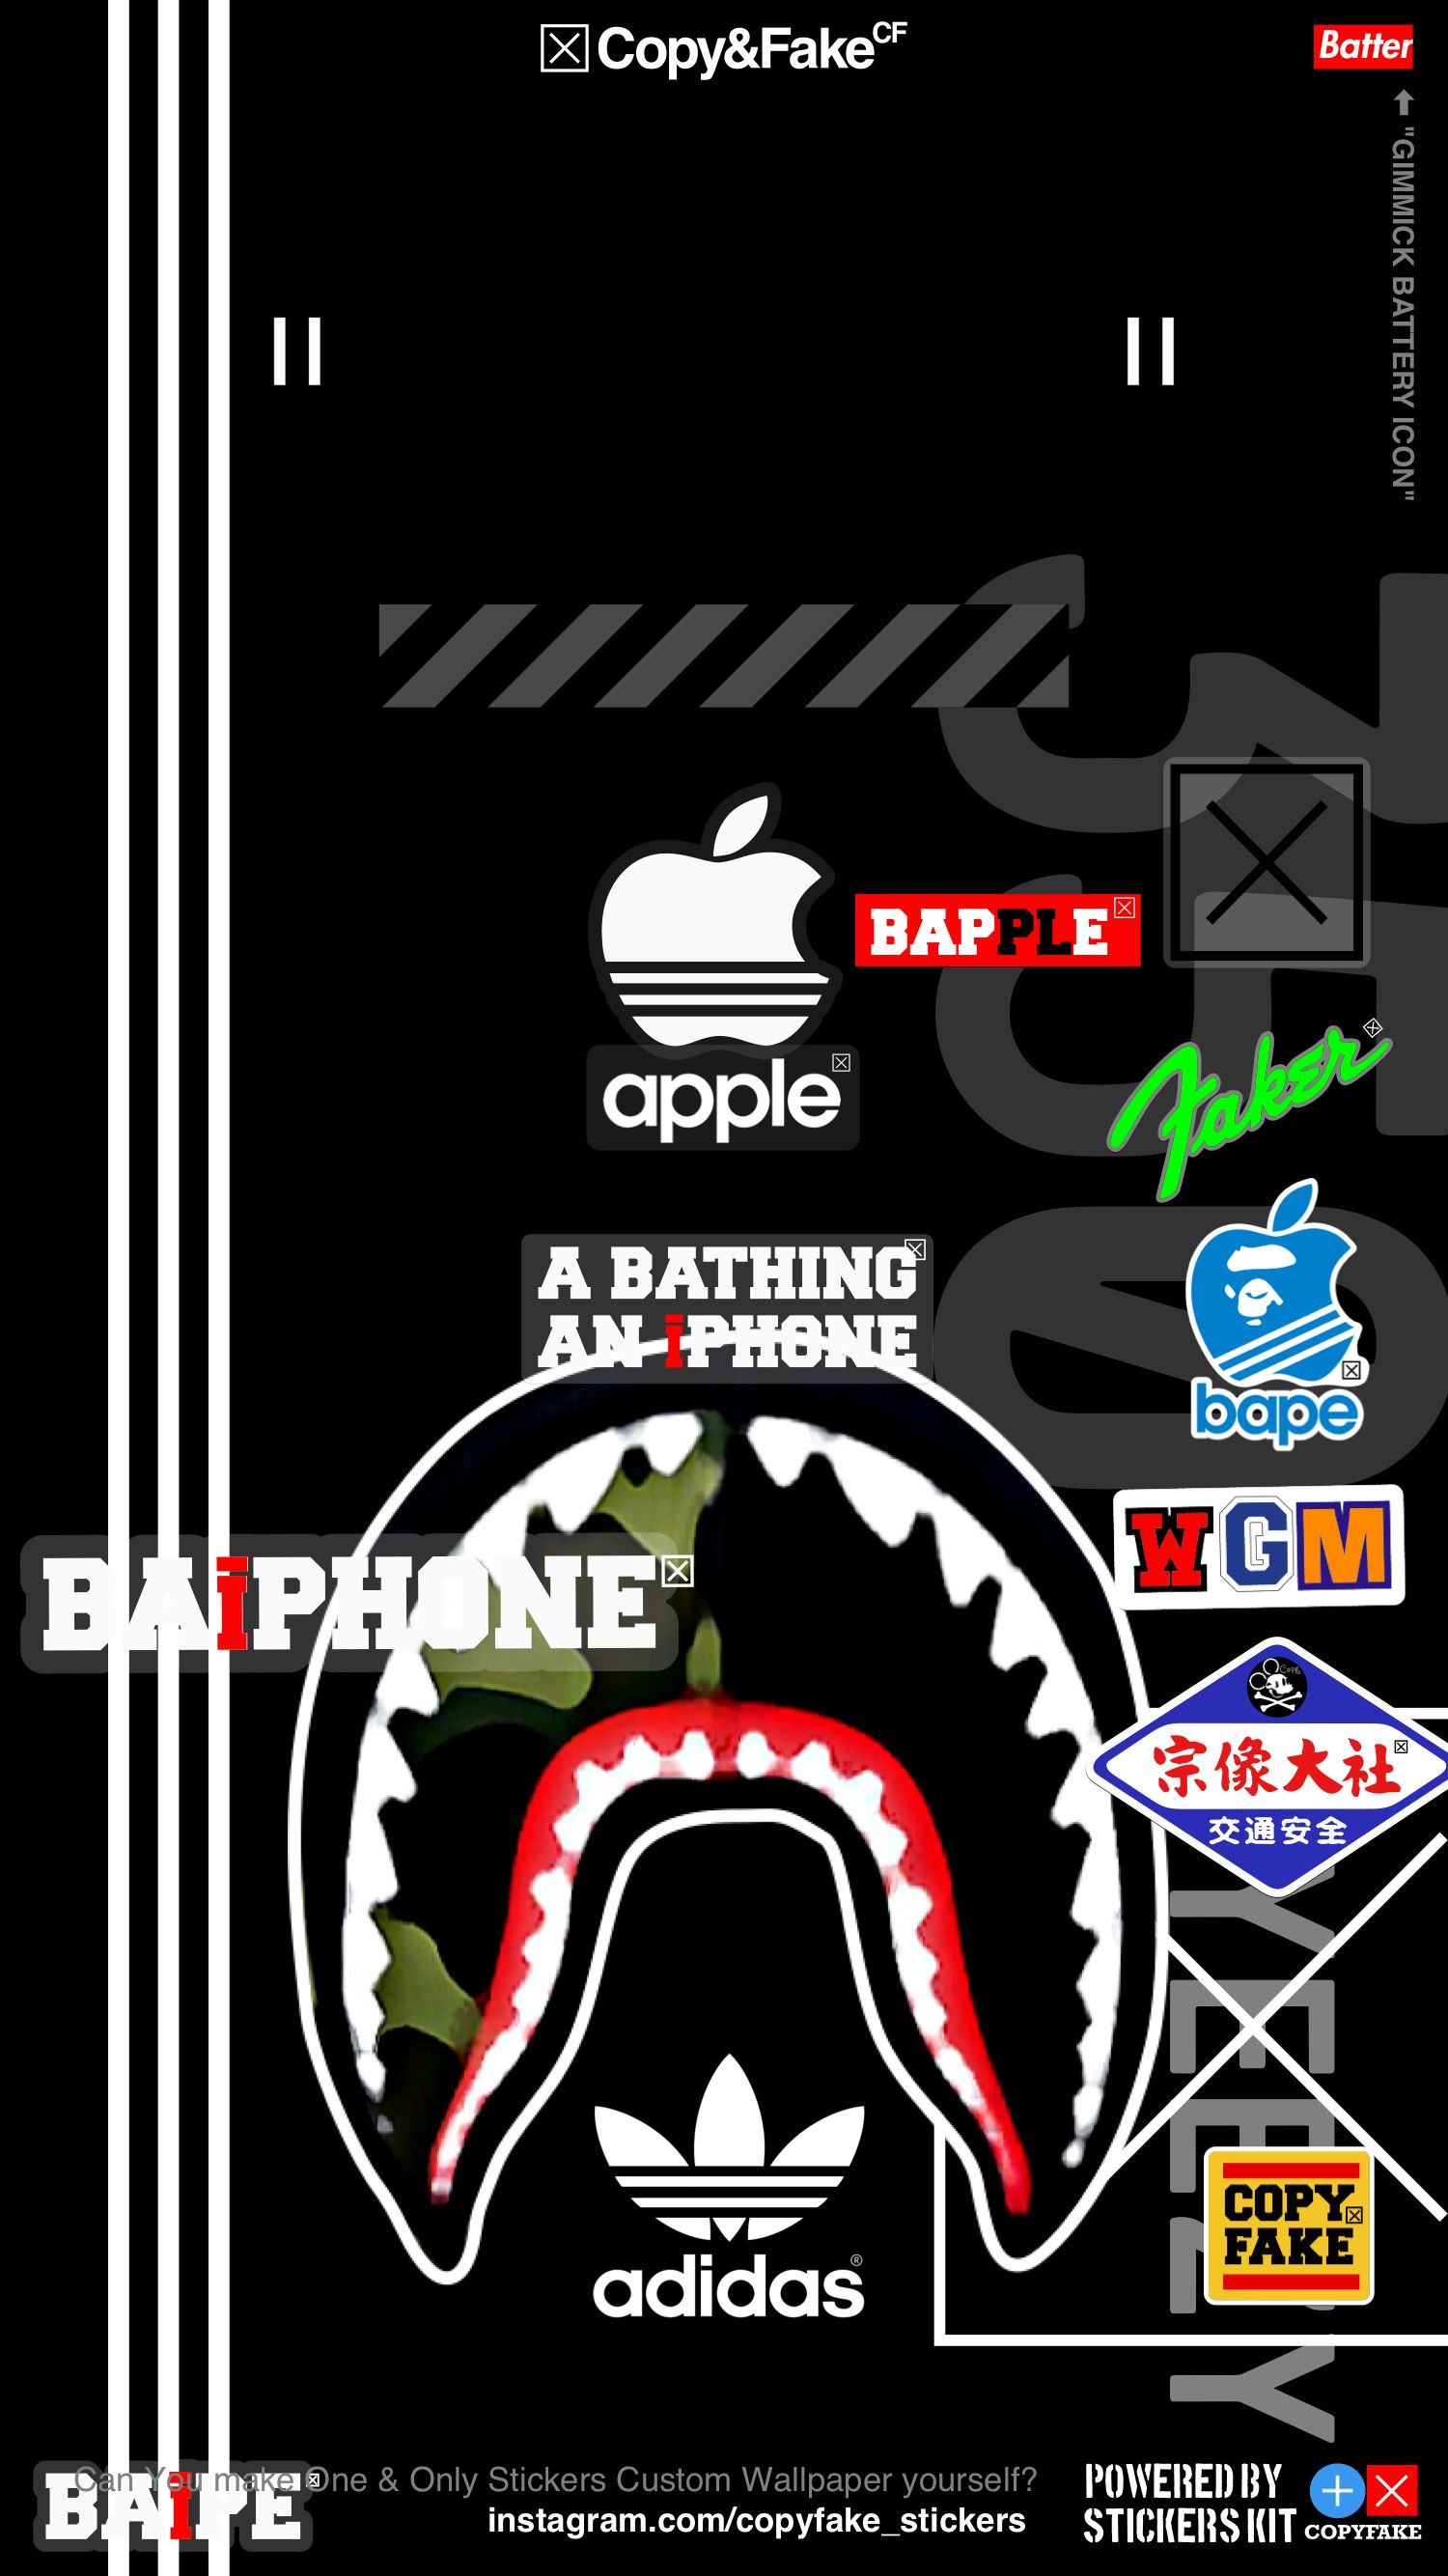 Bape Adidas Stickers Wallpaper Blk Made By Stickers Kit Bape Wallpaper Iphone Hypebeast Iphone Wallpaper Rapper Wallpaper Iphone